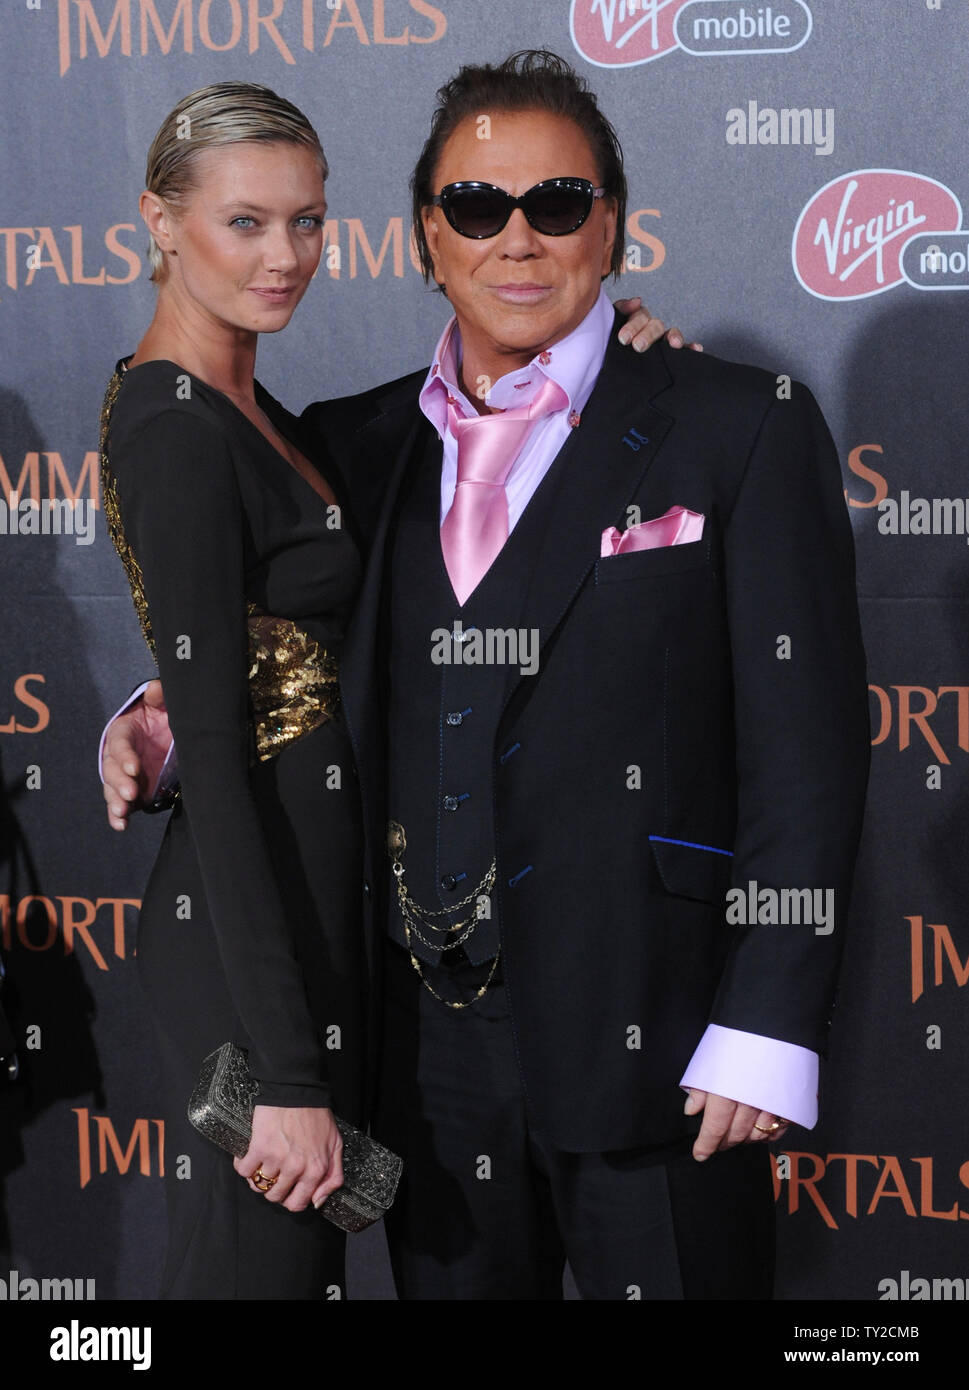 Mickey Rourke And His Girlfriend High Resolution Stock Photography And Images Alamy Migliaia di nuove immagini di alta qualità aggiunte ogni giorno. https www alamy com actor mickey rourke a cast member in the motion picture fantasy immortals and his girlfriend anastassija makarenko attend the world premiere of the film at nokia theatre in los angeles on november 7 2011 upijim ruymen image257594747 html